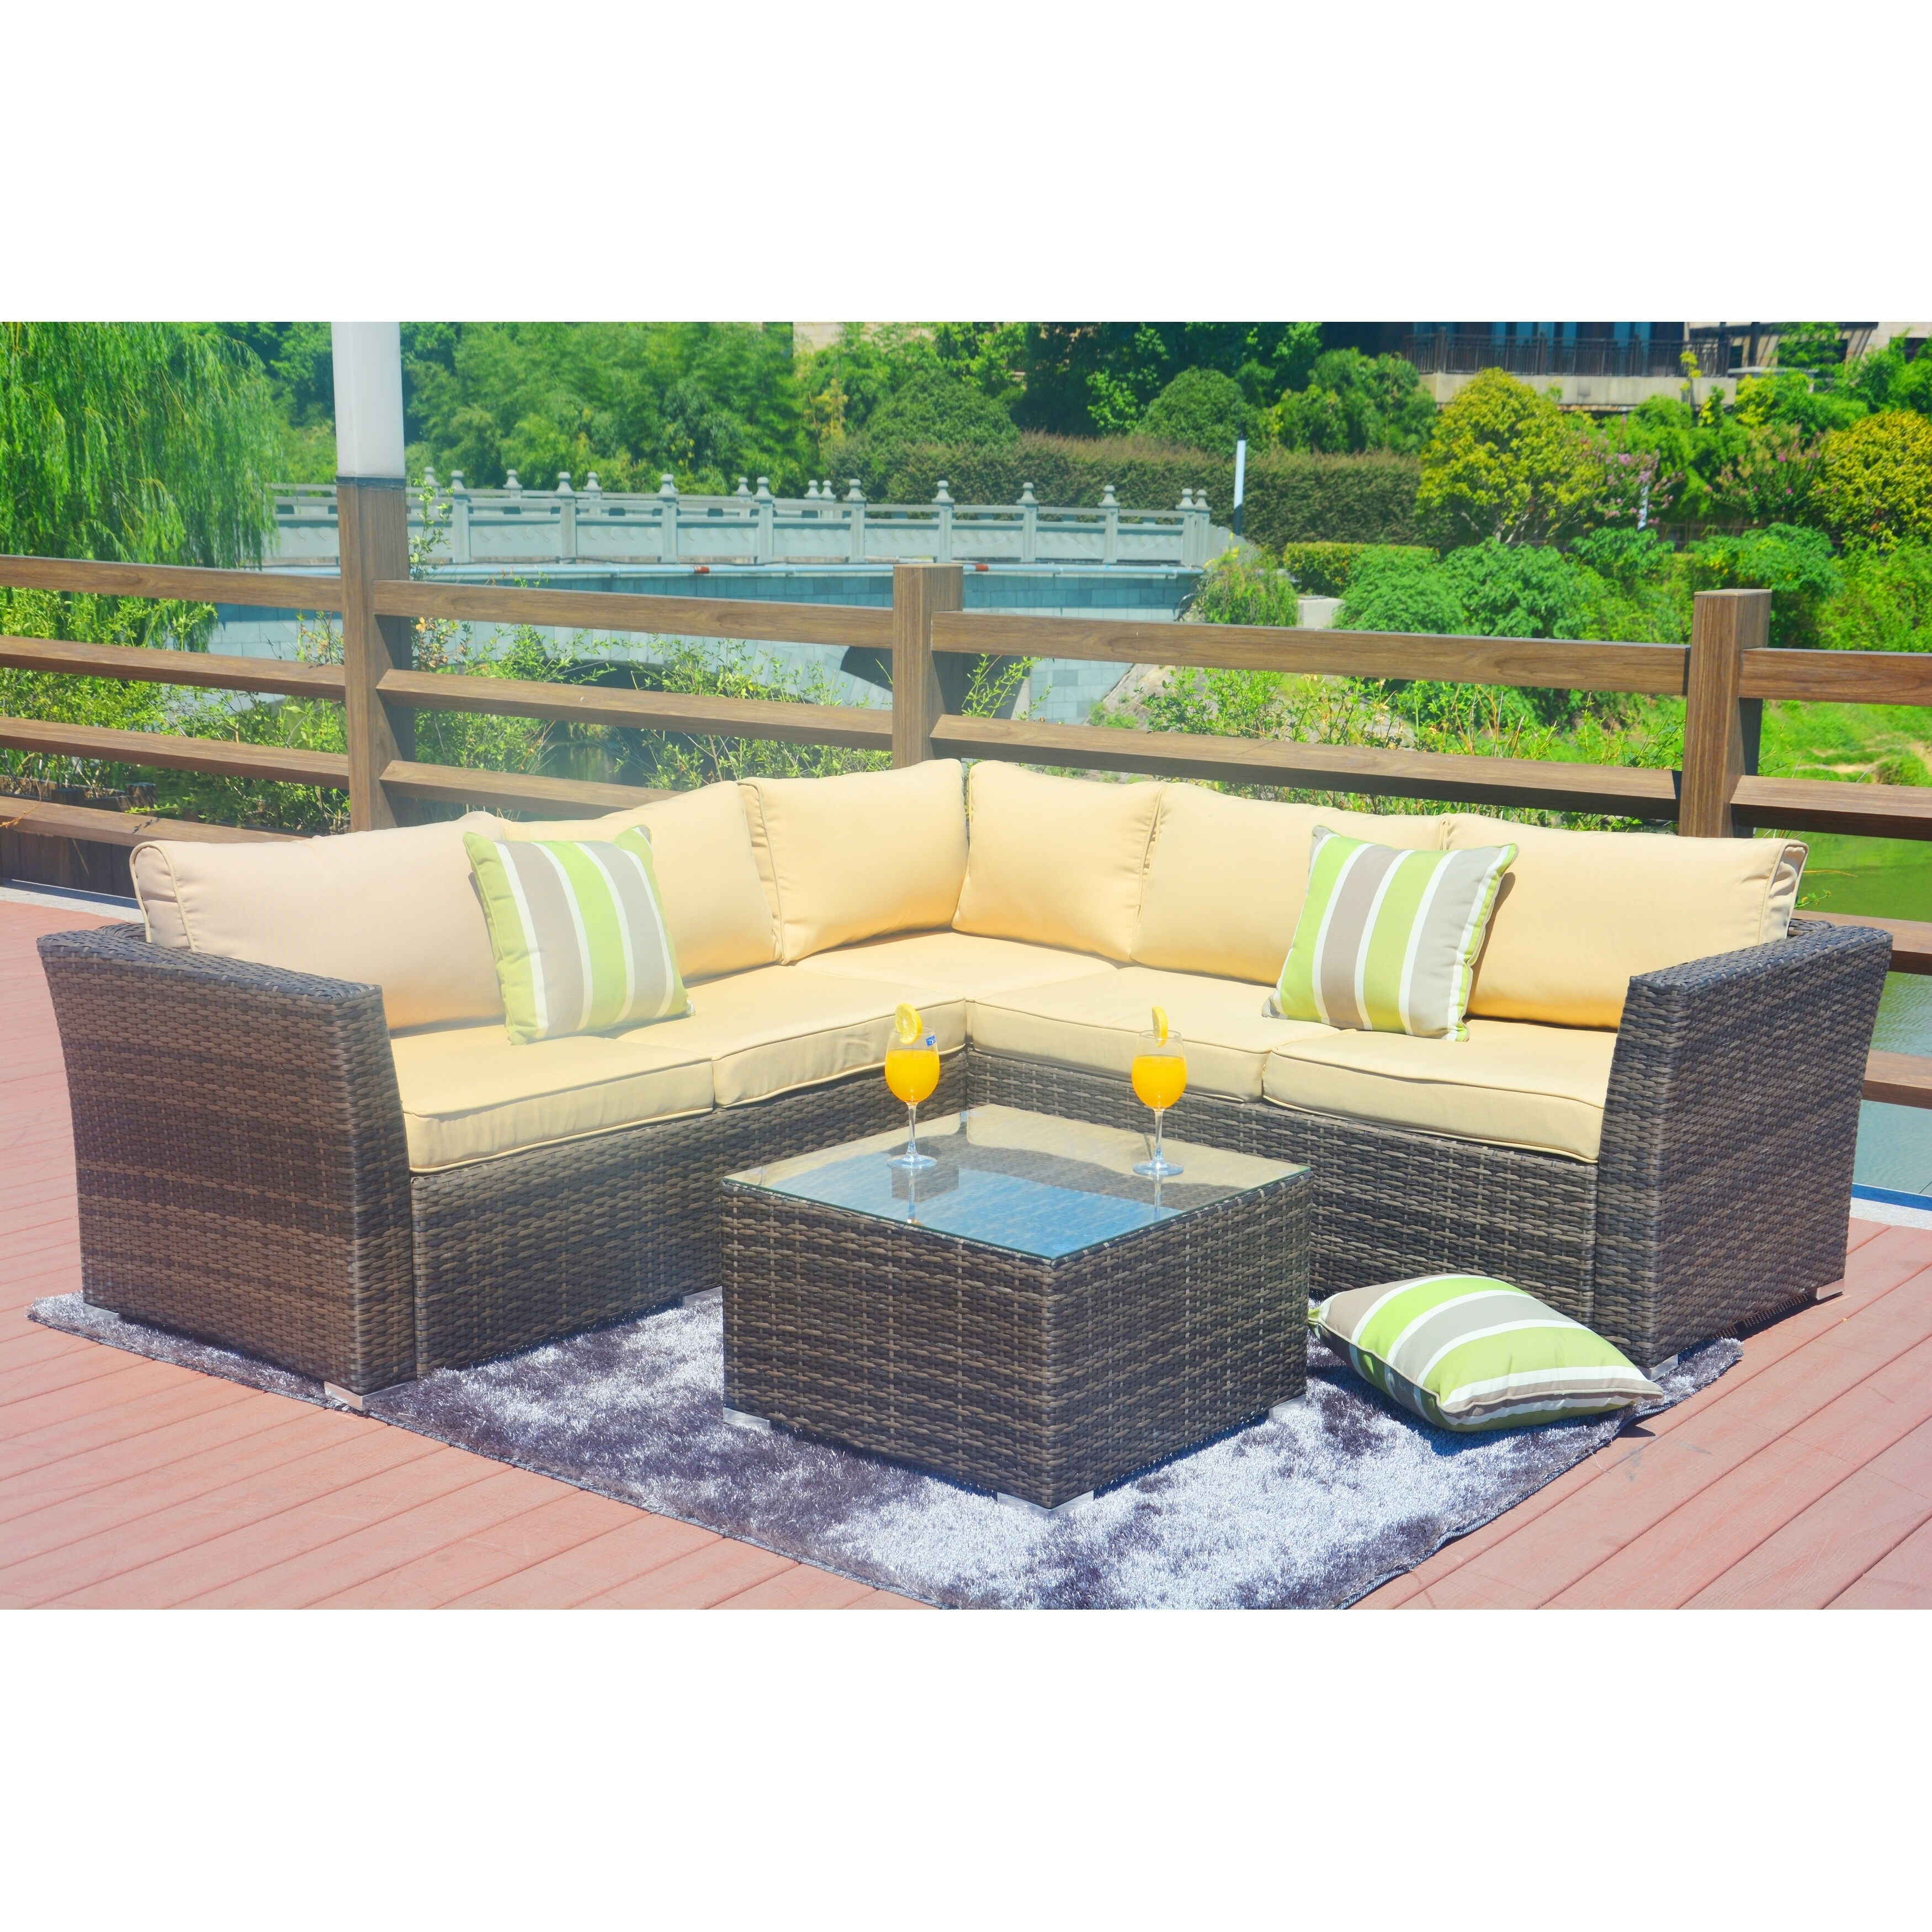 Shop 4 Piece Outdoor Sectional Sofa Set With Cushions Patio